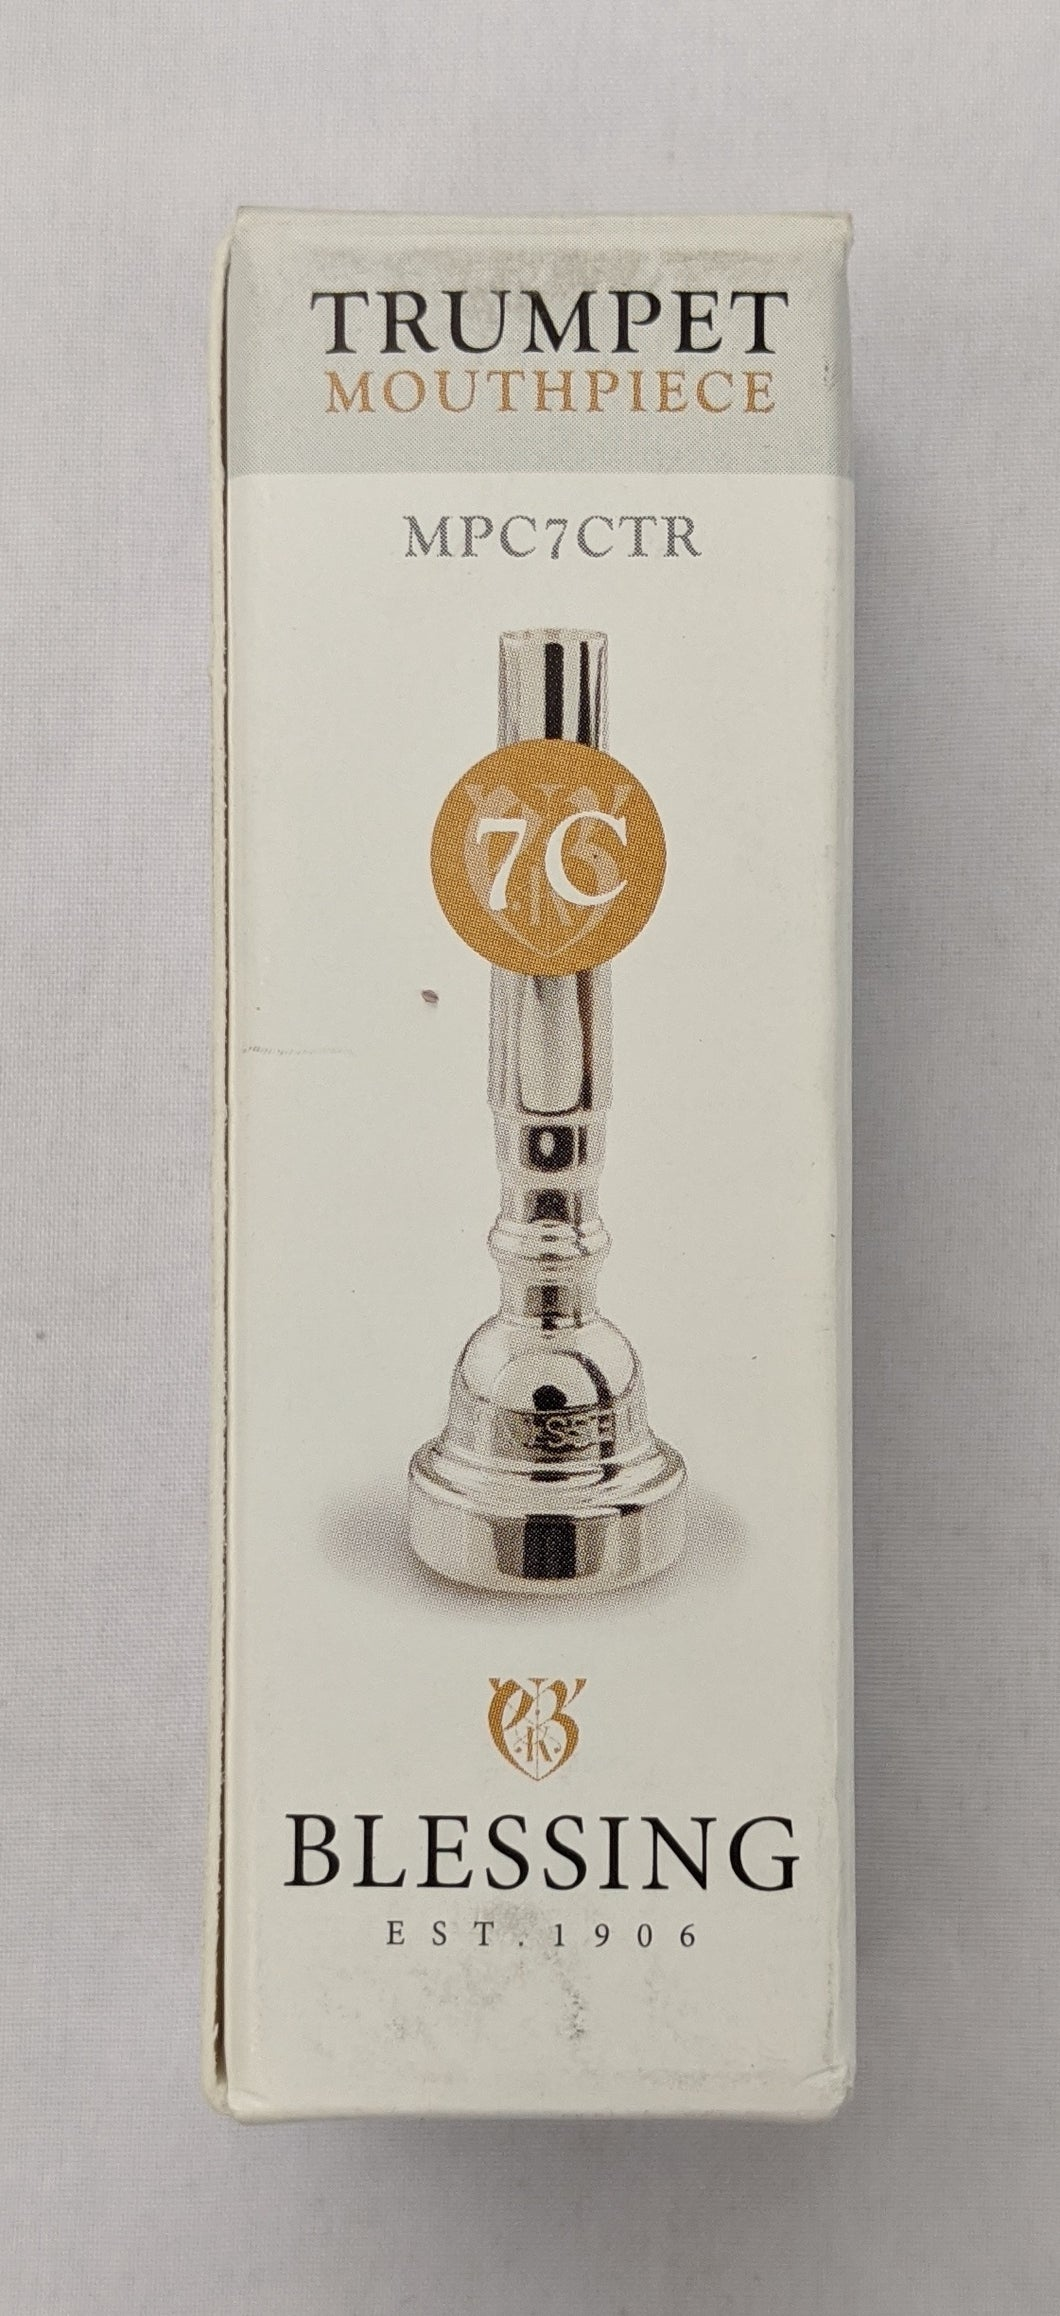 Blessing Trumpet Mouthpiece 7C